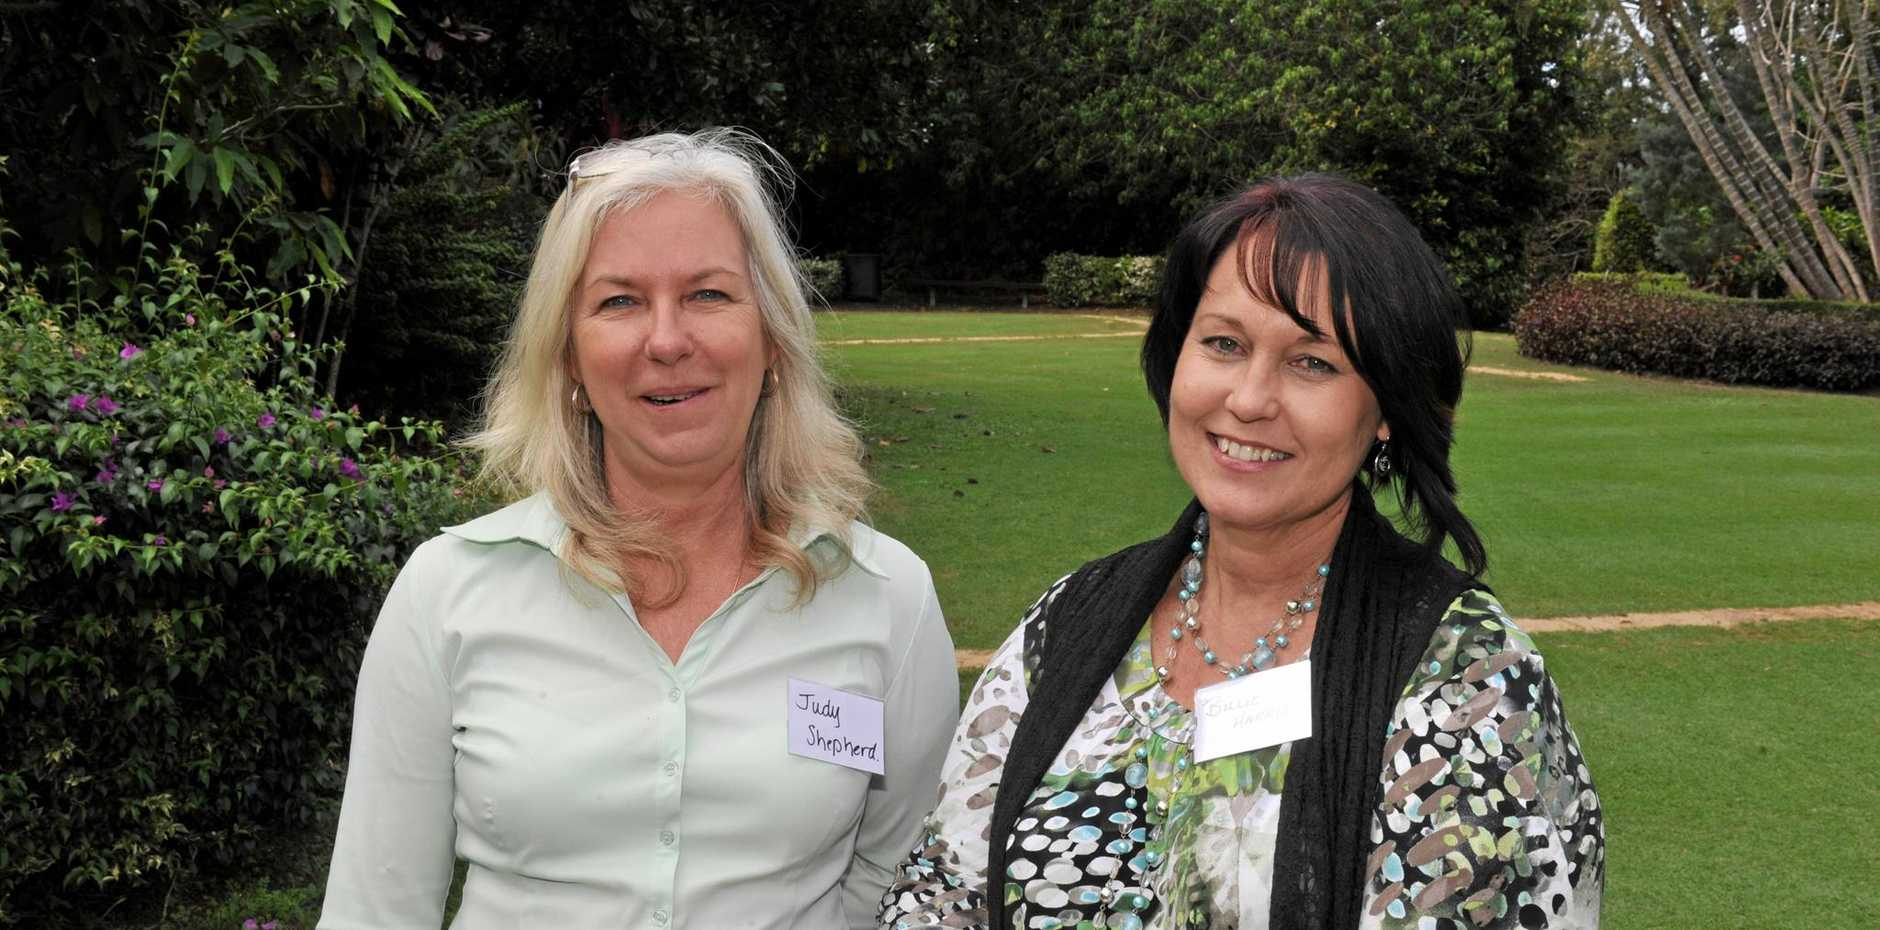 RURAL WOMEN: Judy Shepherd (left), with Billie Harris at the Women in horticulture forum, is worried about the proposed tax.